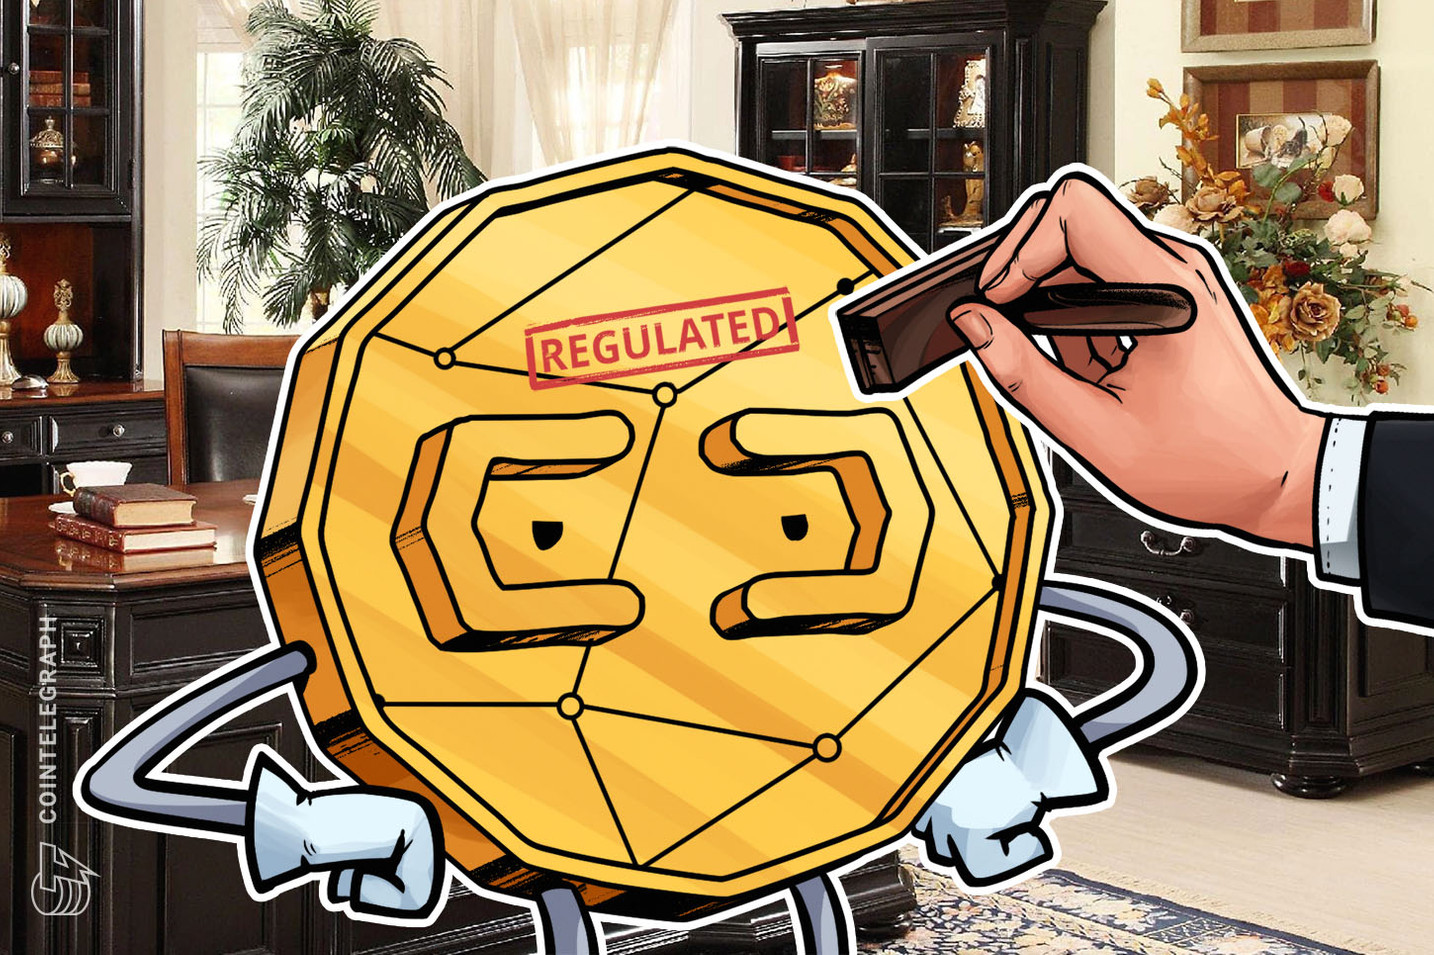 Circle CEO Calls on Global Economies to Coordinate on Crypto Regulation